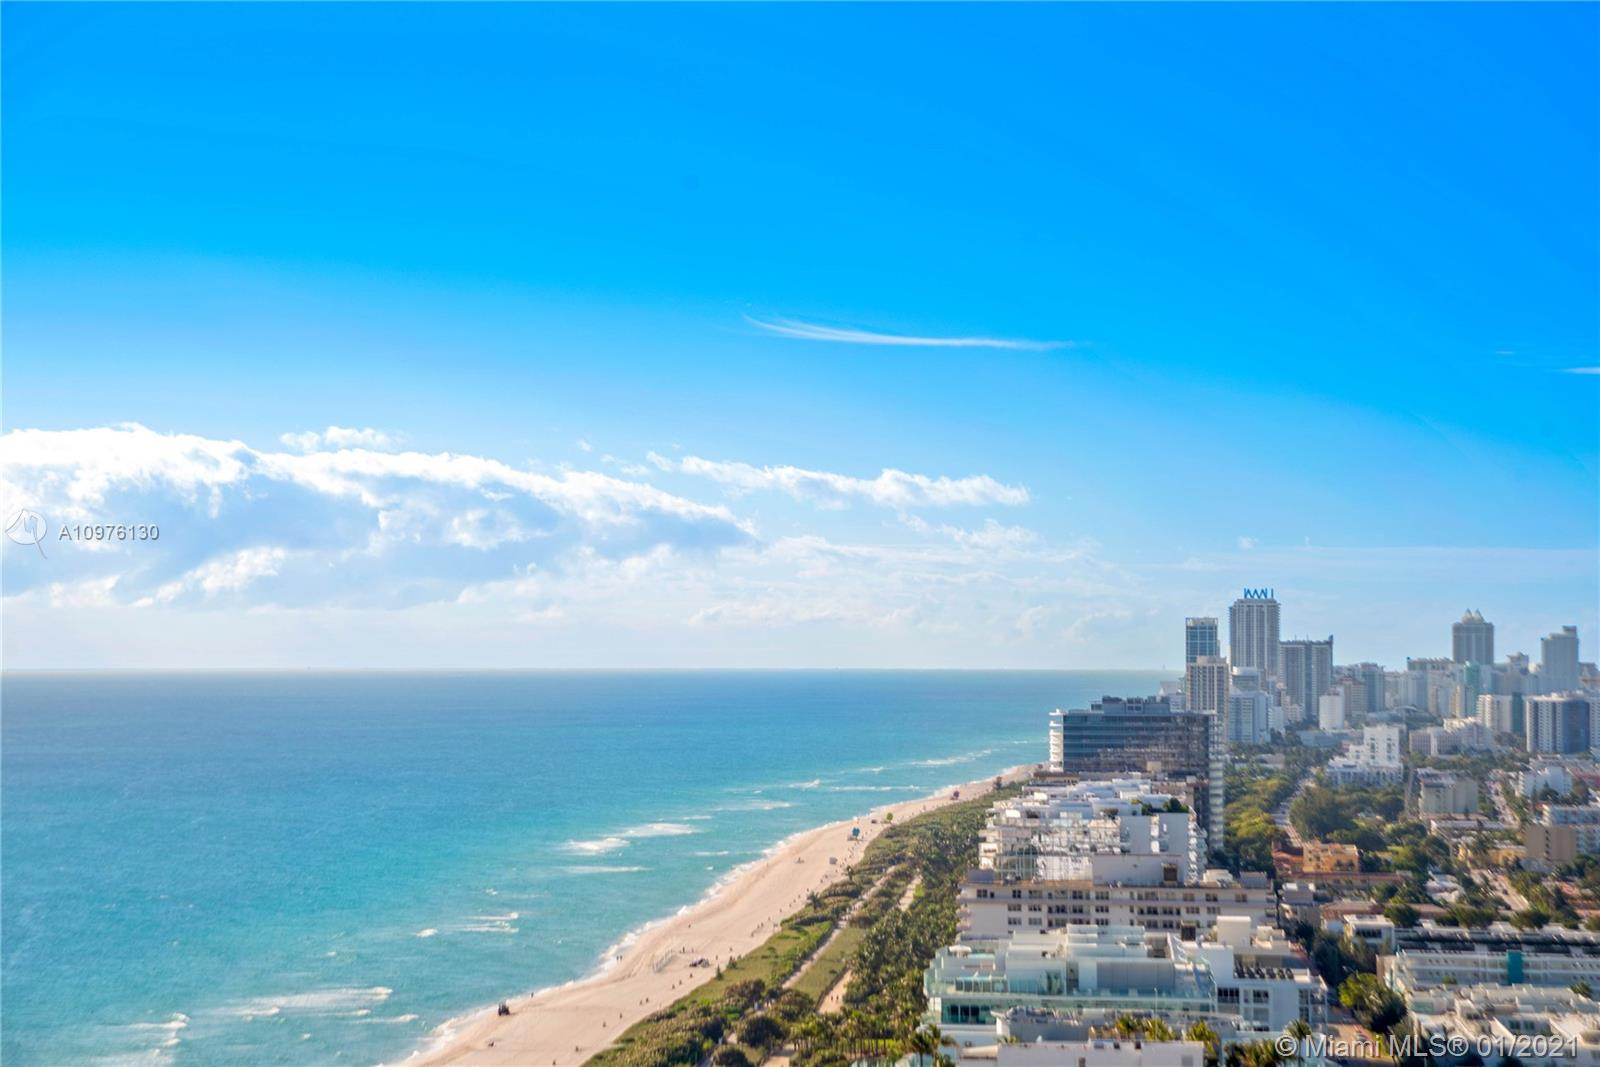 St. Regis Penthouse 8 boasts some of the most amazing ocean and coastline views in all of South Florida. Sit and enjoy the southeast exposure from any of the three balconies. When the elevator stops at the private foyer, step right this tastefully renovated 2 bed + den, condominium that boasts imported silky smooth Italian marble floors throughout, a Crestron smart light and sound system. This home has everything expected from a St. Regis penthouse. Residents enjoy all of the hotel amenities such as cabanas, restaurants, room service, white-glove butler services, and of course, access to the Remede Spa. Residents also have VIP status to all of these amenities, 2-valet parking spots, and a 24-hour concierge.